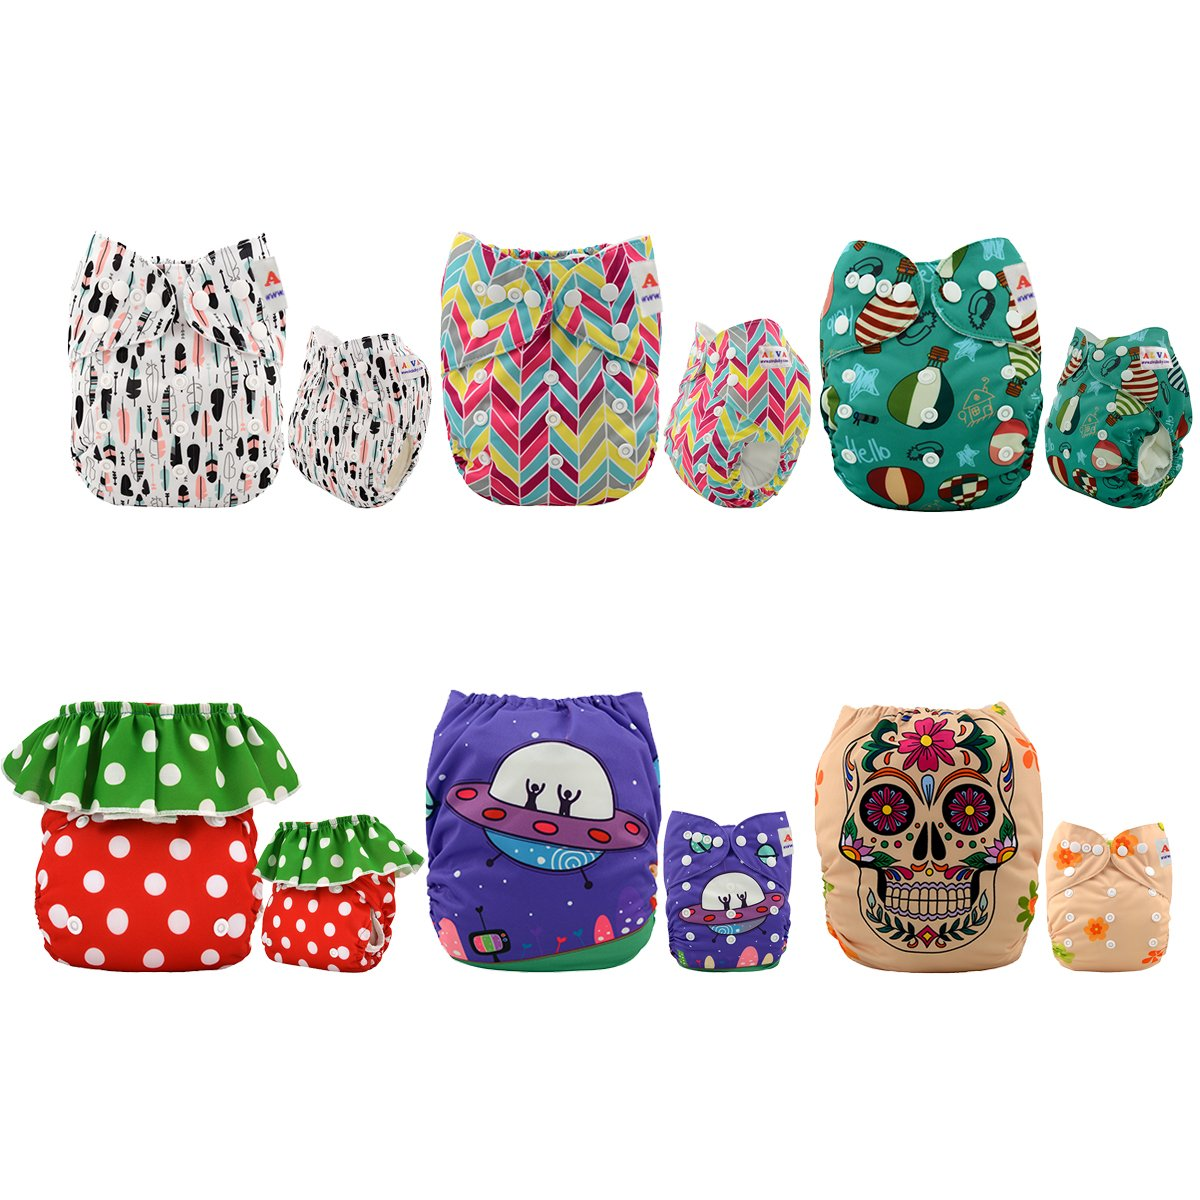 ALVABABY Reuseable Washable Pocket Cloth Diapers 6PCS + 12 inserts (Girl  Color), Gift